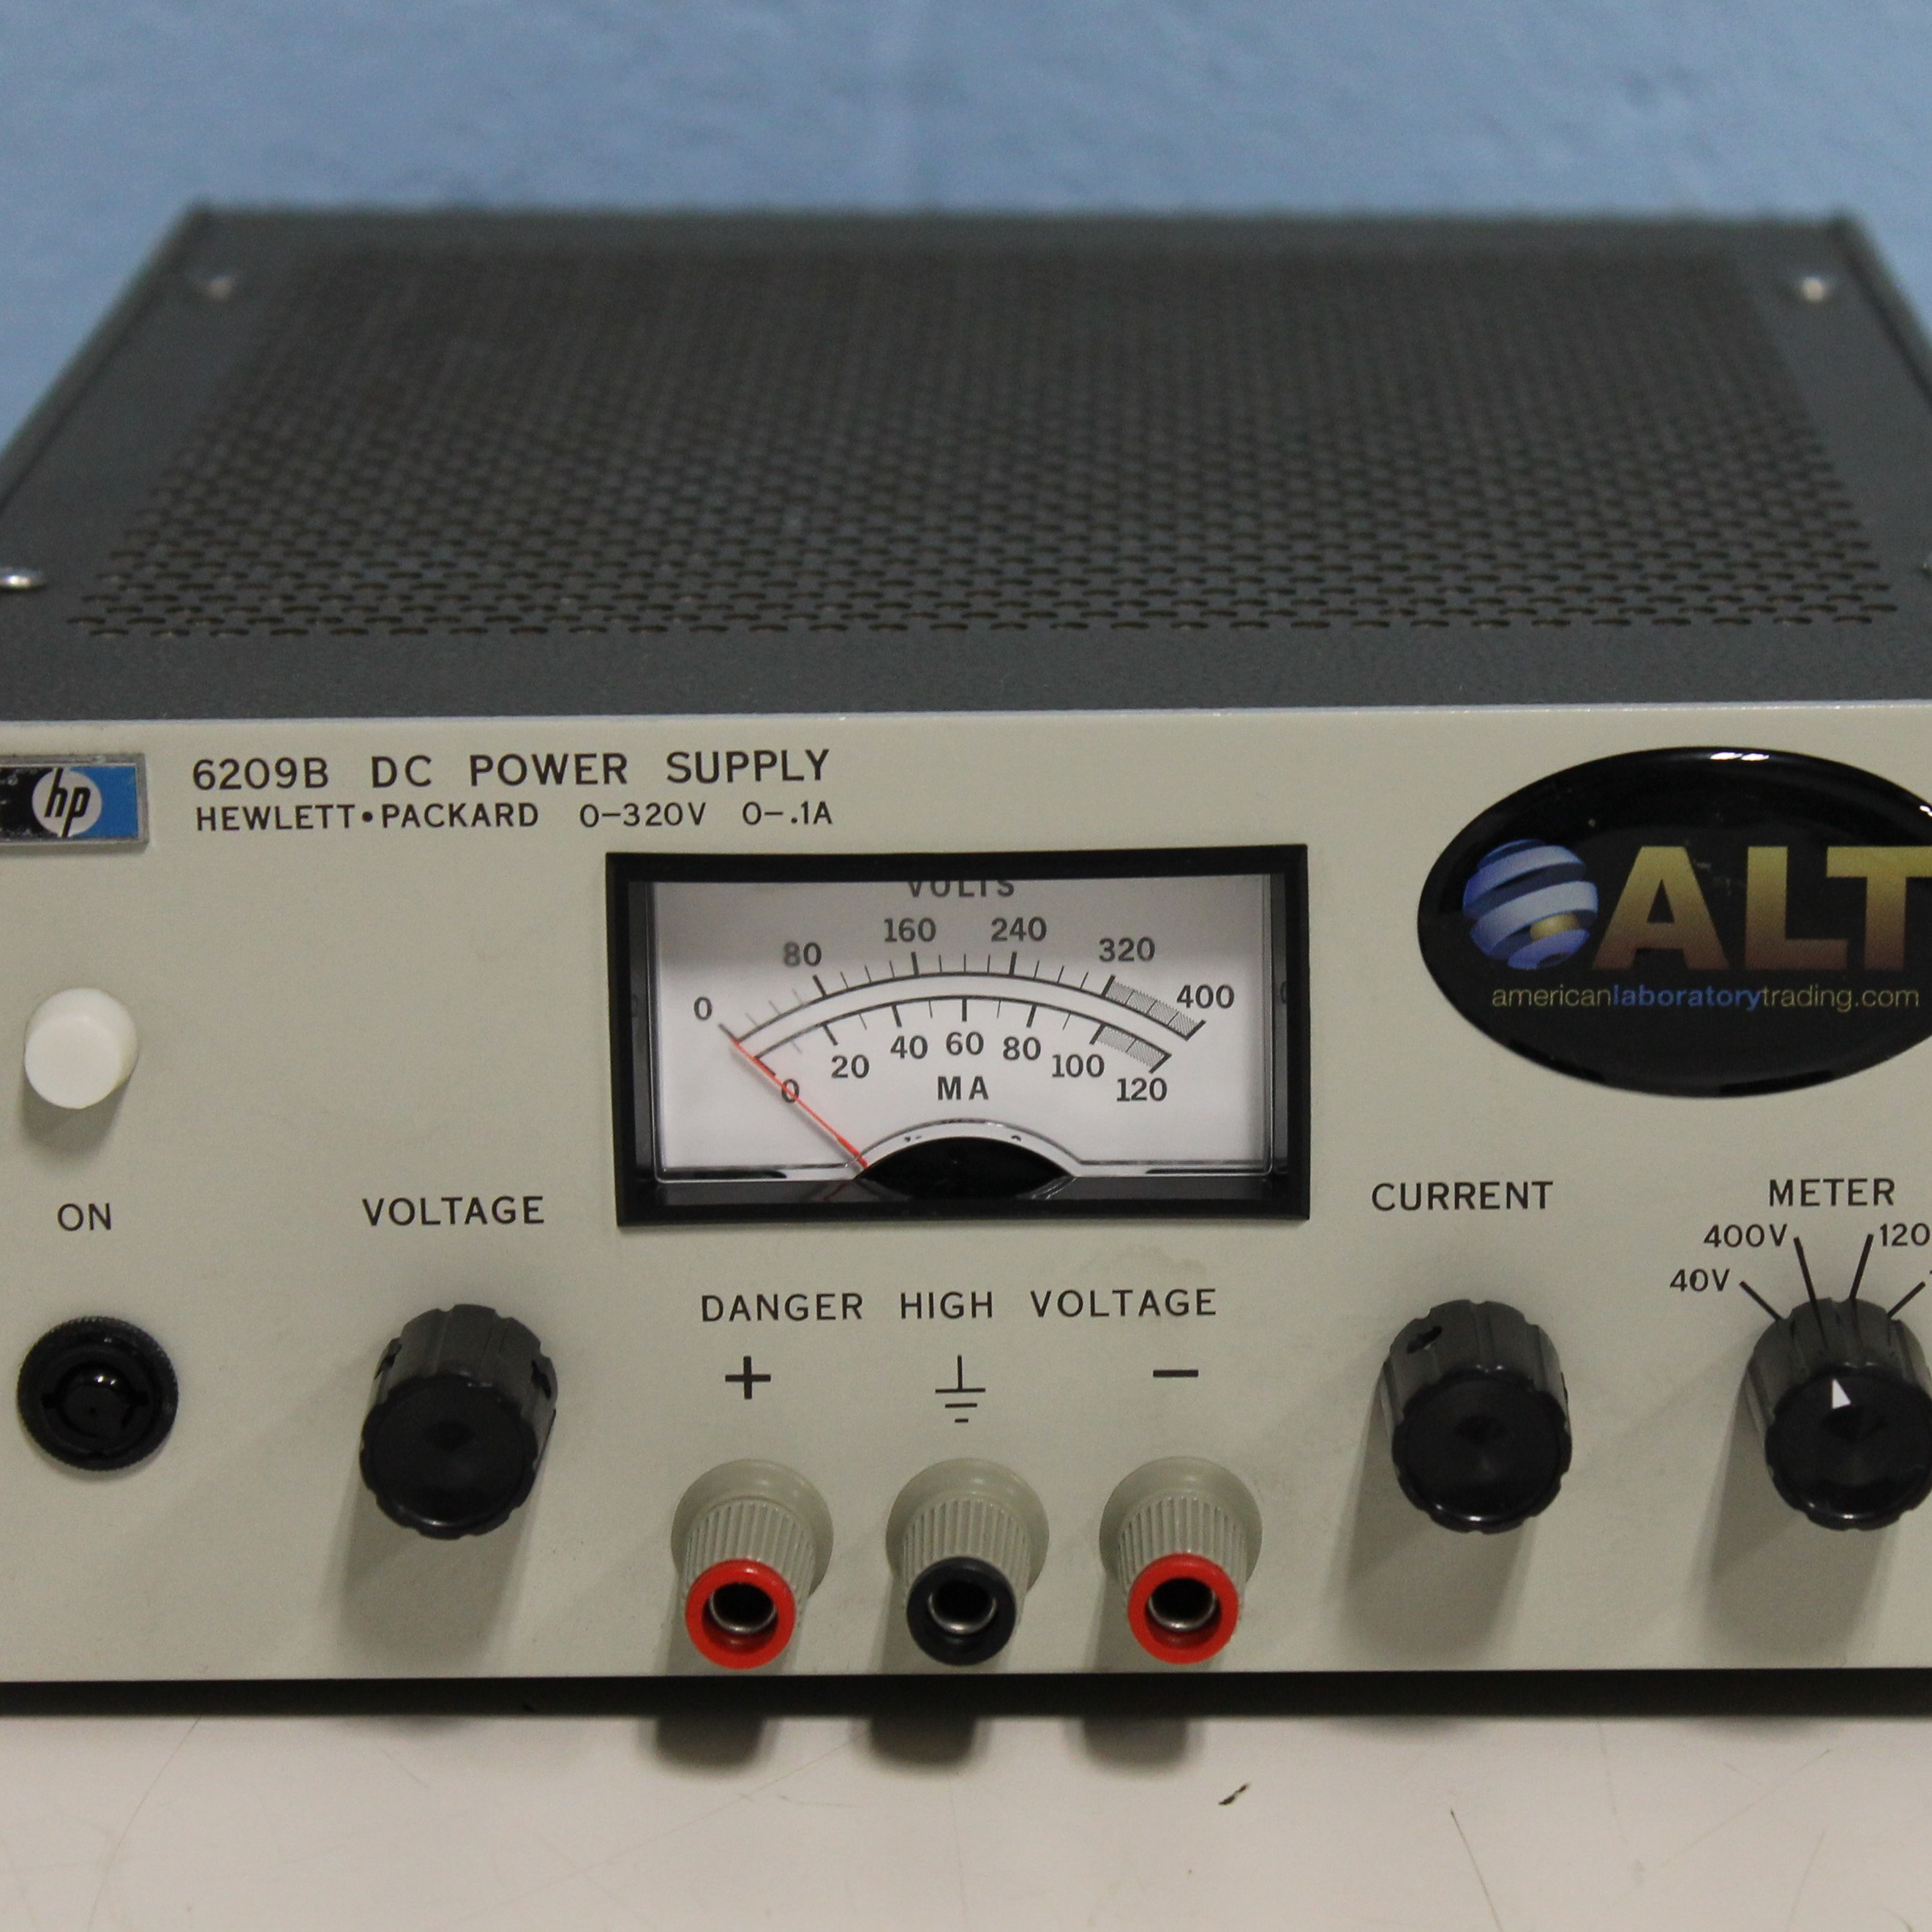 Hewlett Packard 6209B DC Power Supply 0-320V 0-.1A Image